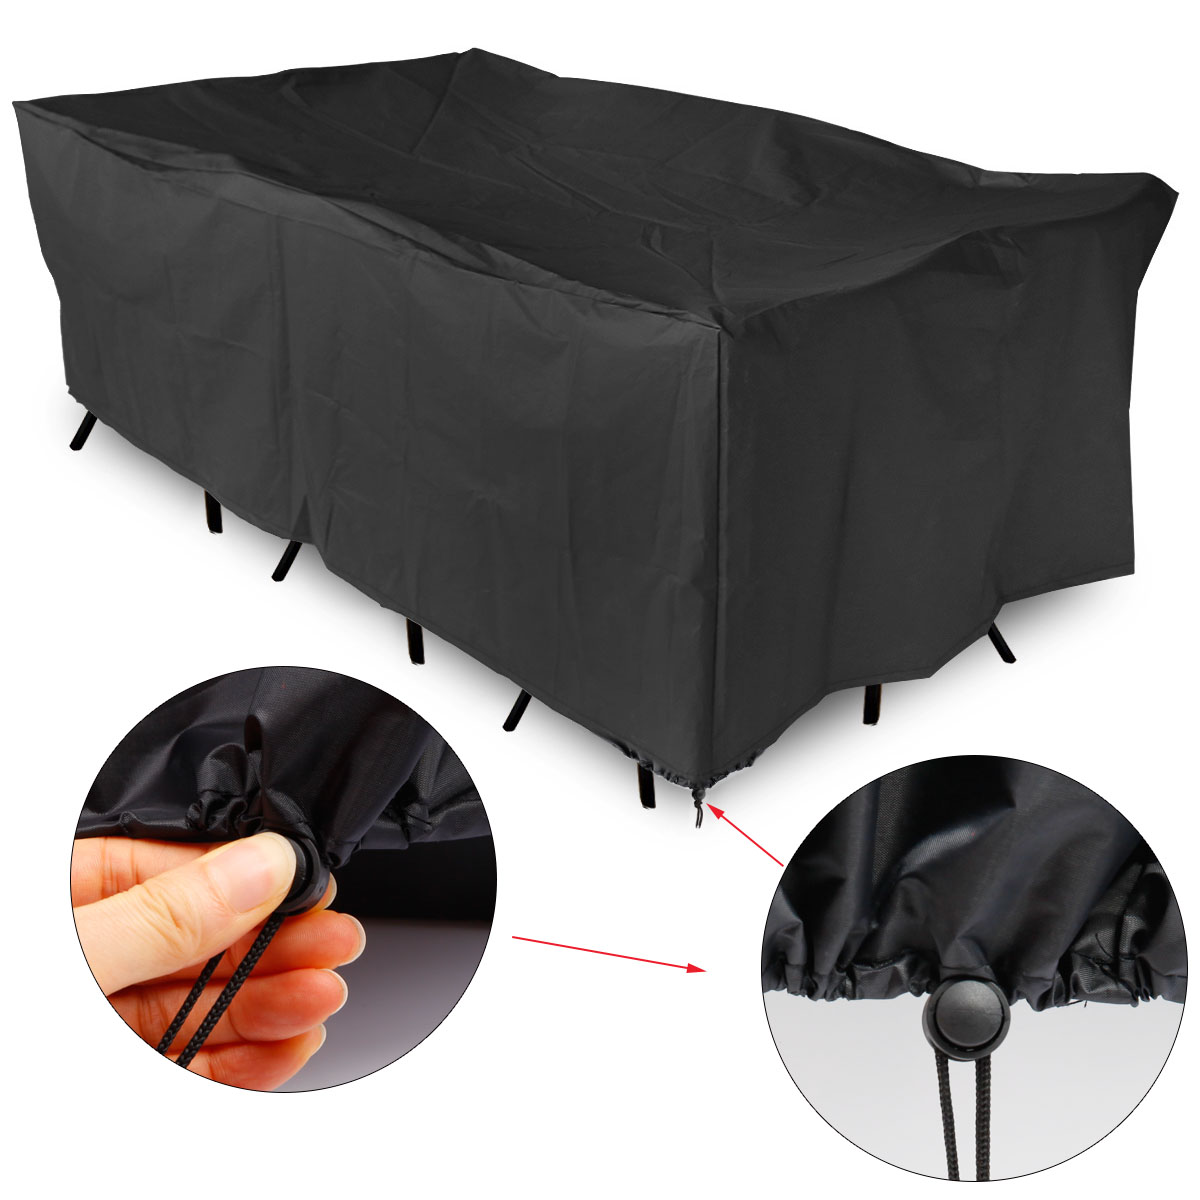 Garden Patio Table Cover Waterproof Outdoor Furniture Shelter Size AU S